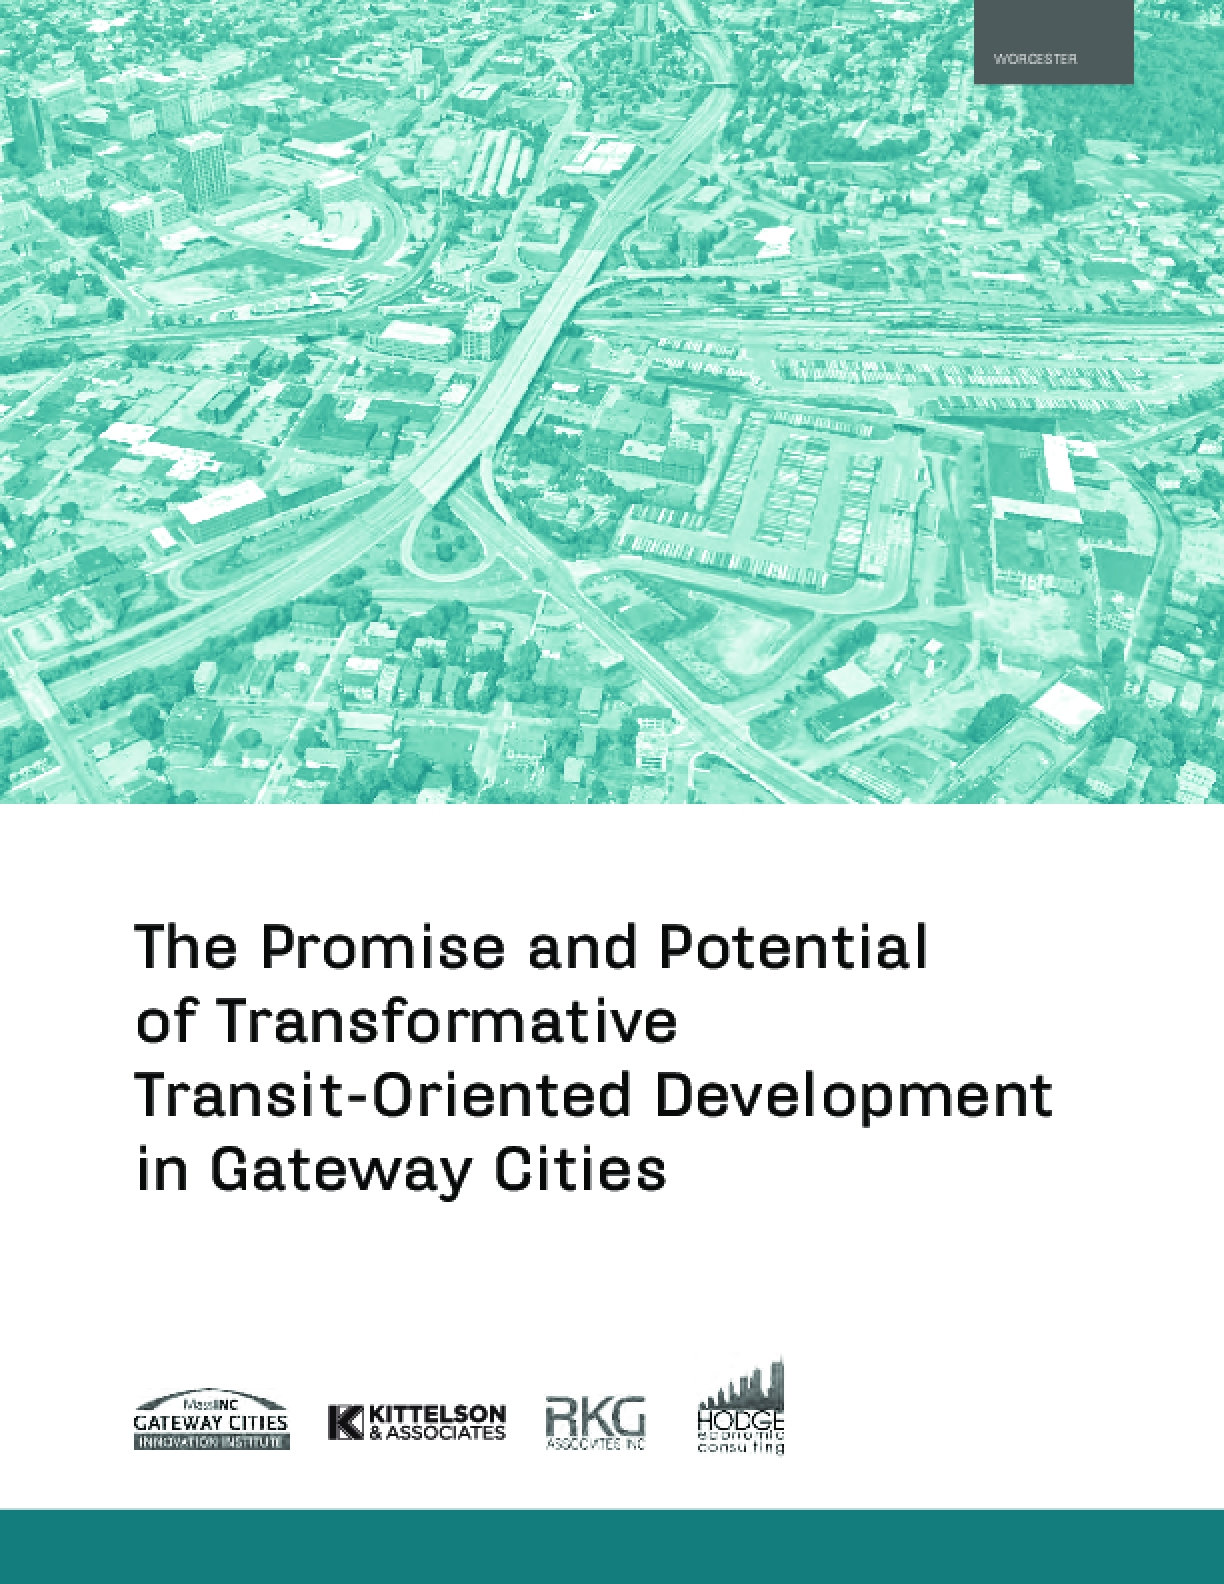 The Promise and Potential of Transformative Transit-Oriented Development in Gateway Cities